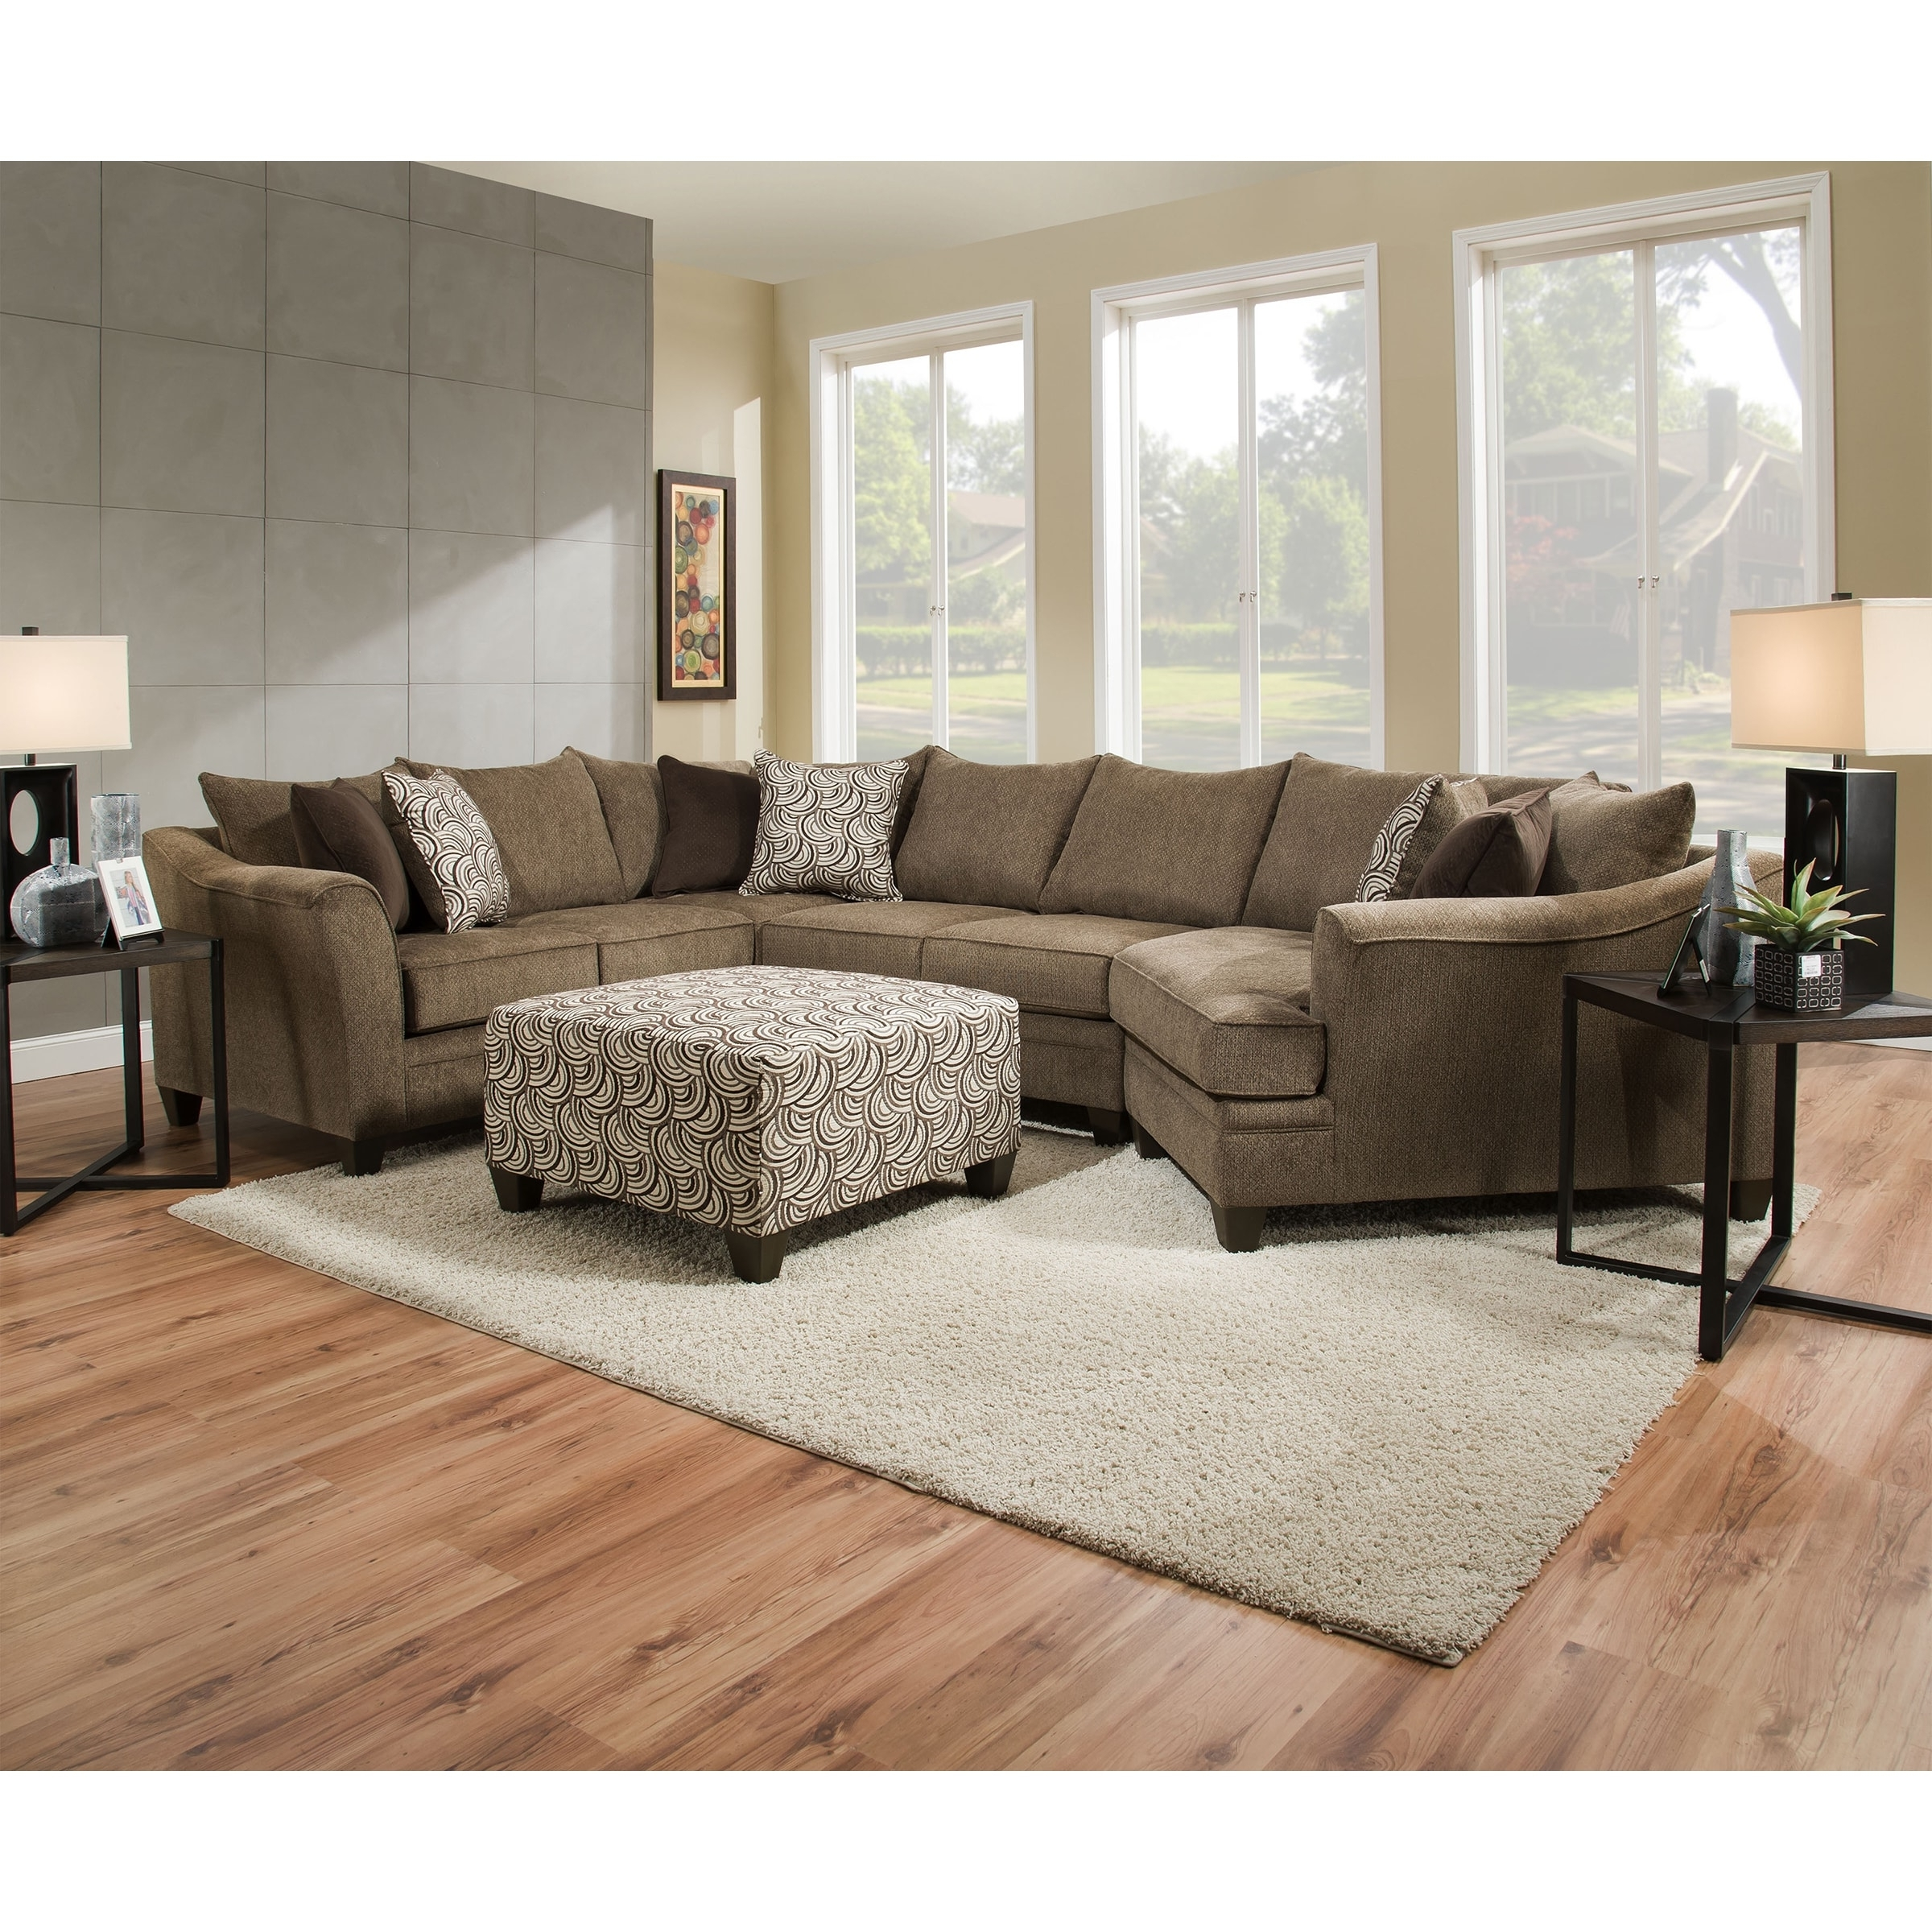 Simmons Upholstery Albany Truffle Sectional – Free Shipping Today In Most Recently Released Simmons Sectional Sofas (View 19 of 20)